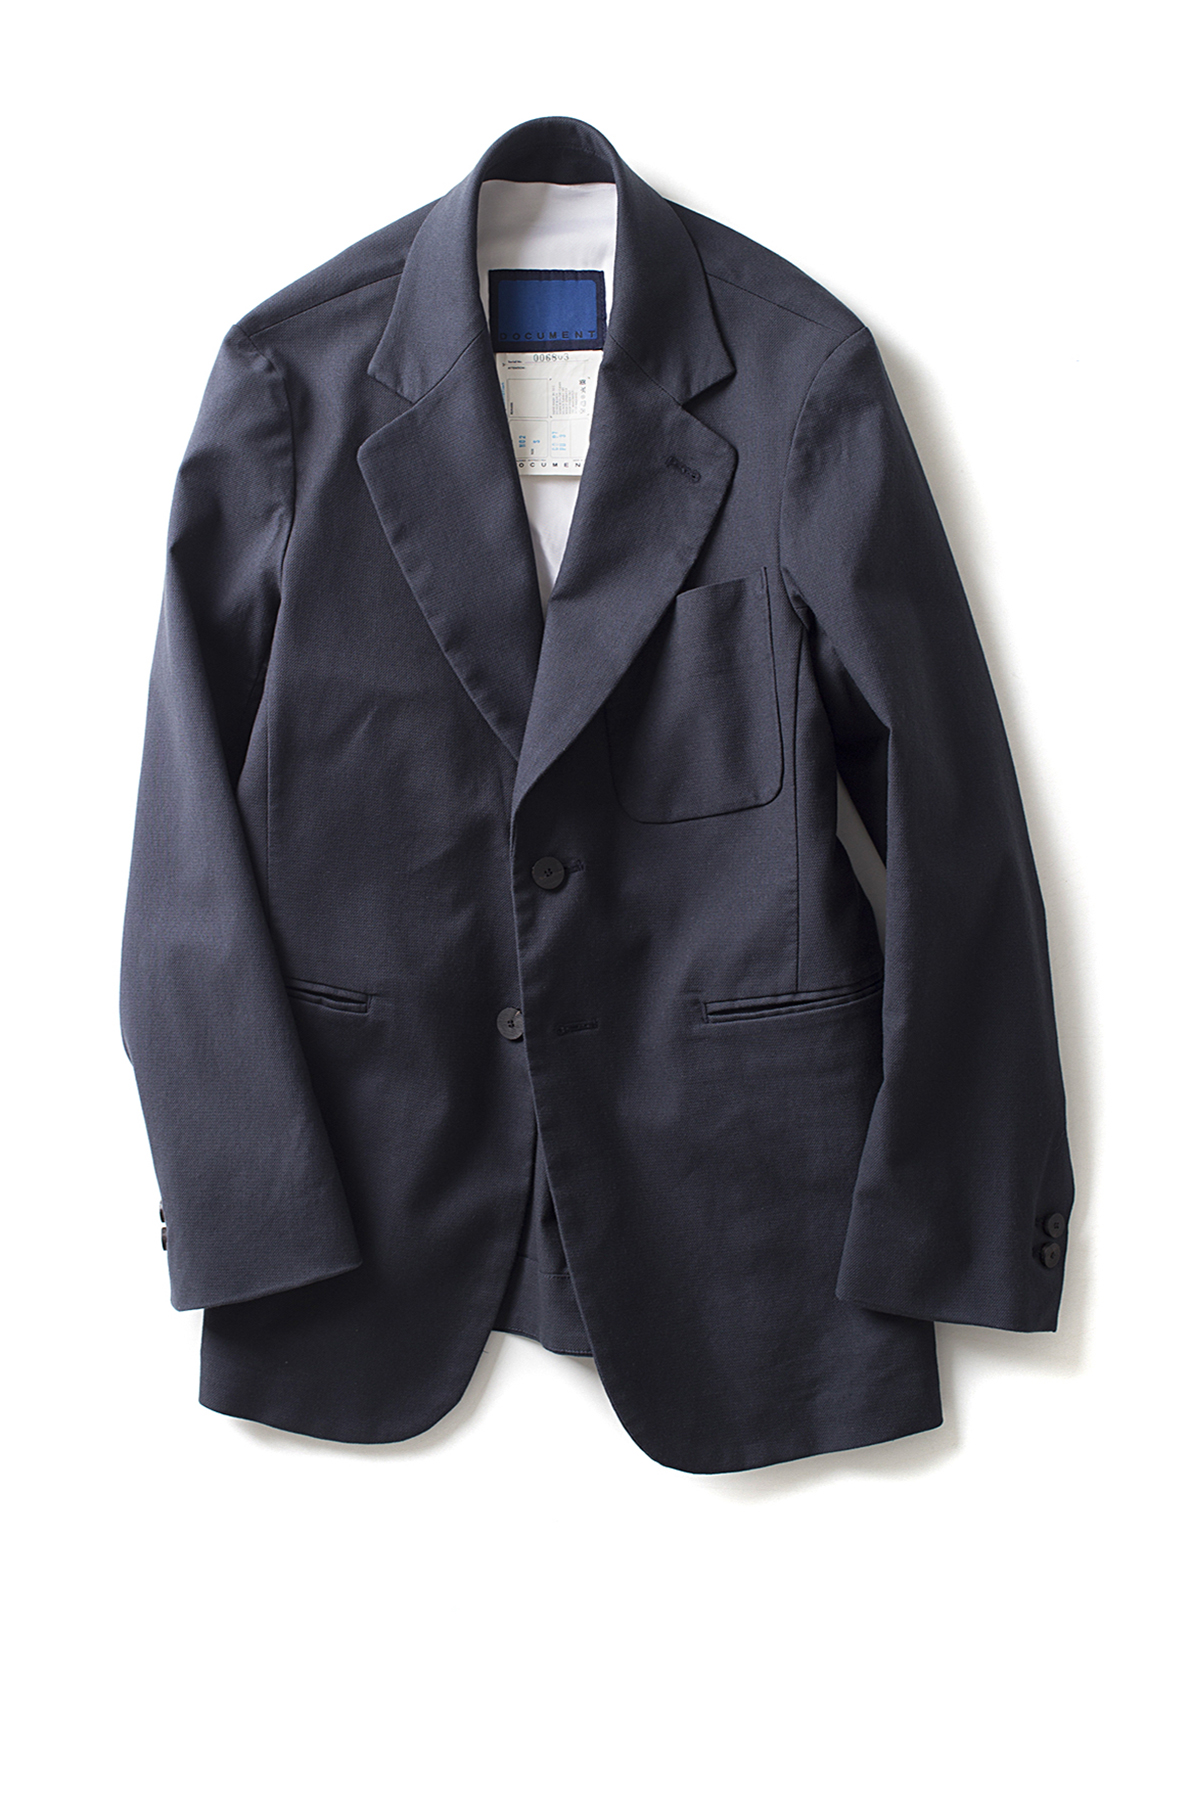 Document : Navy Blazer